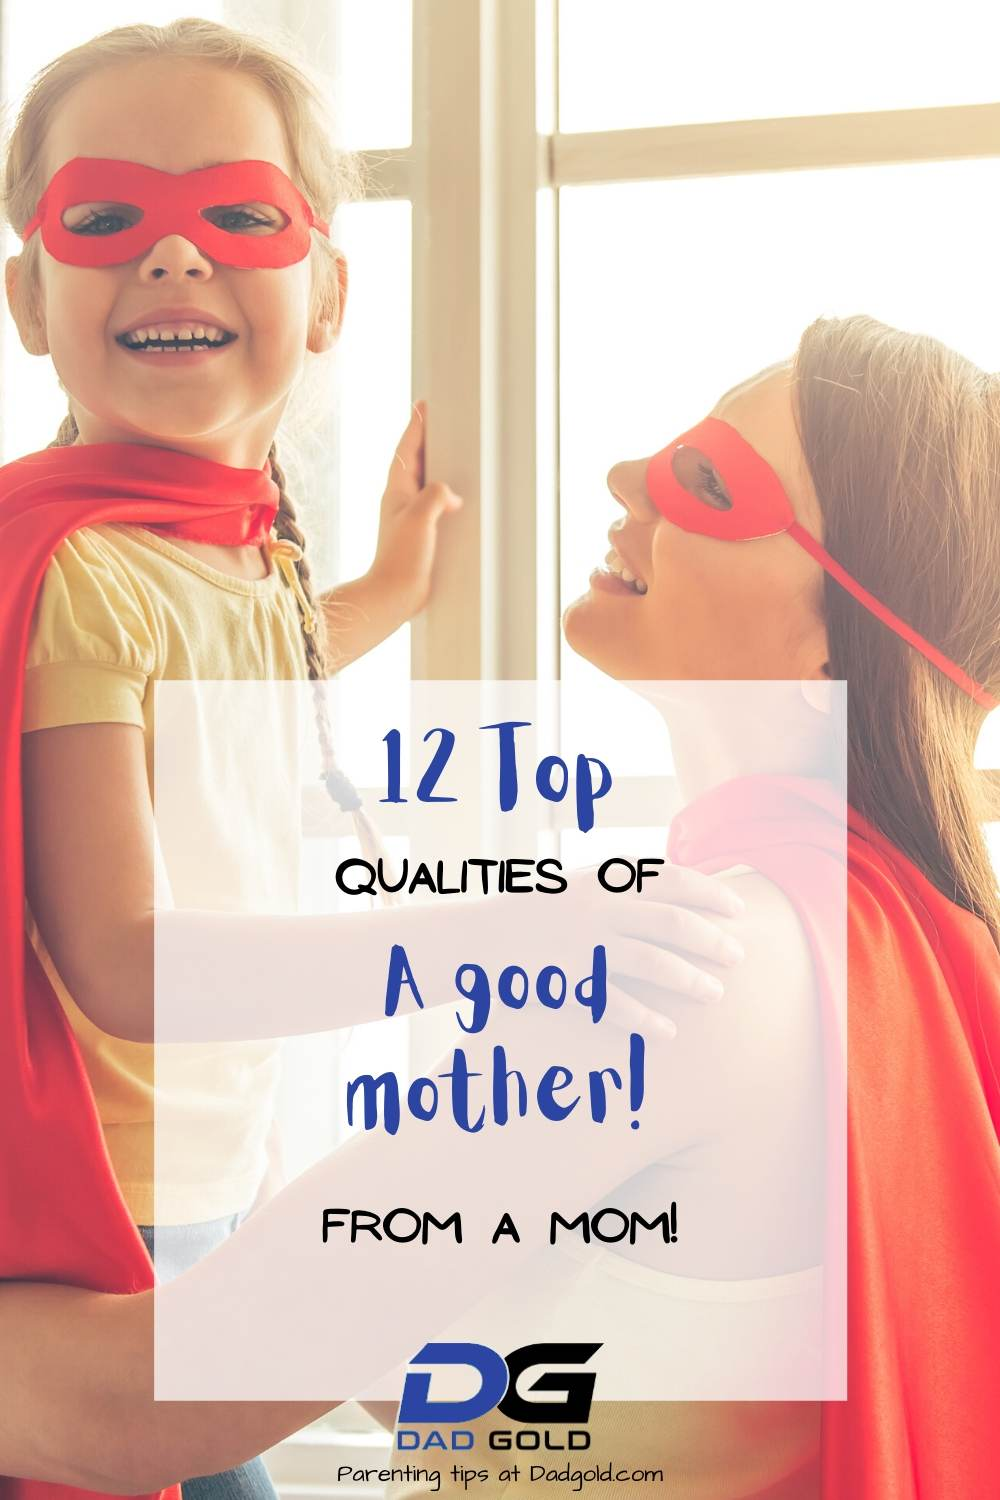 12 qualities of a mother